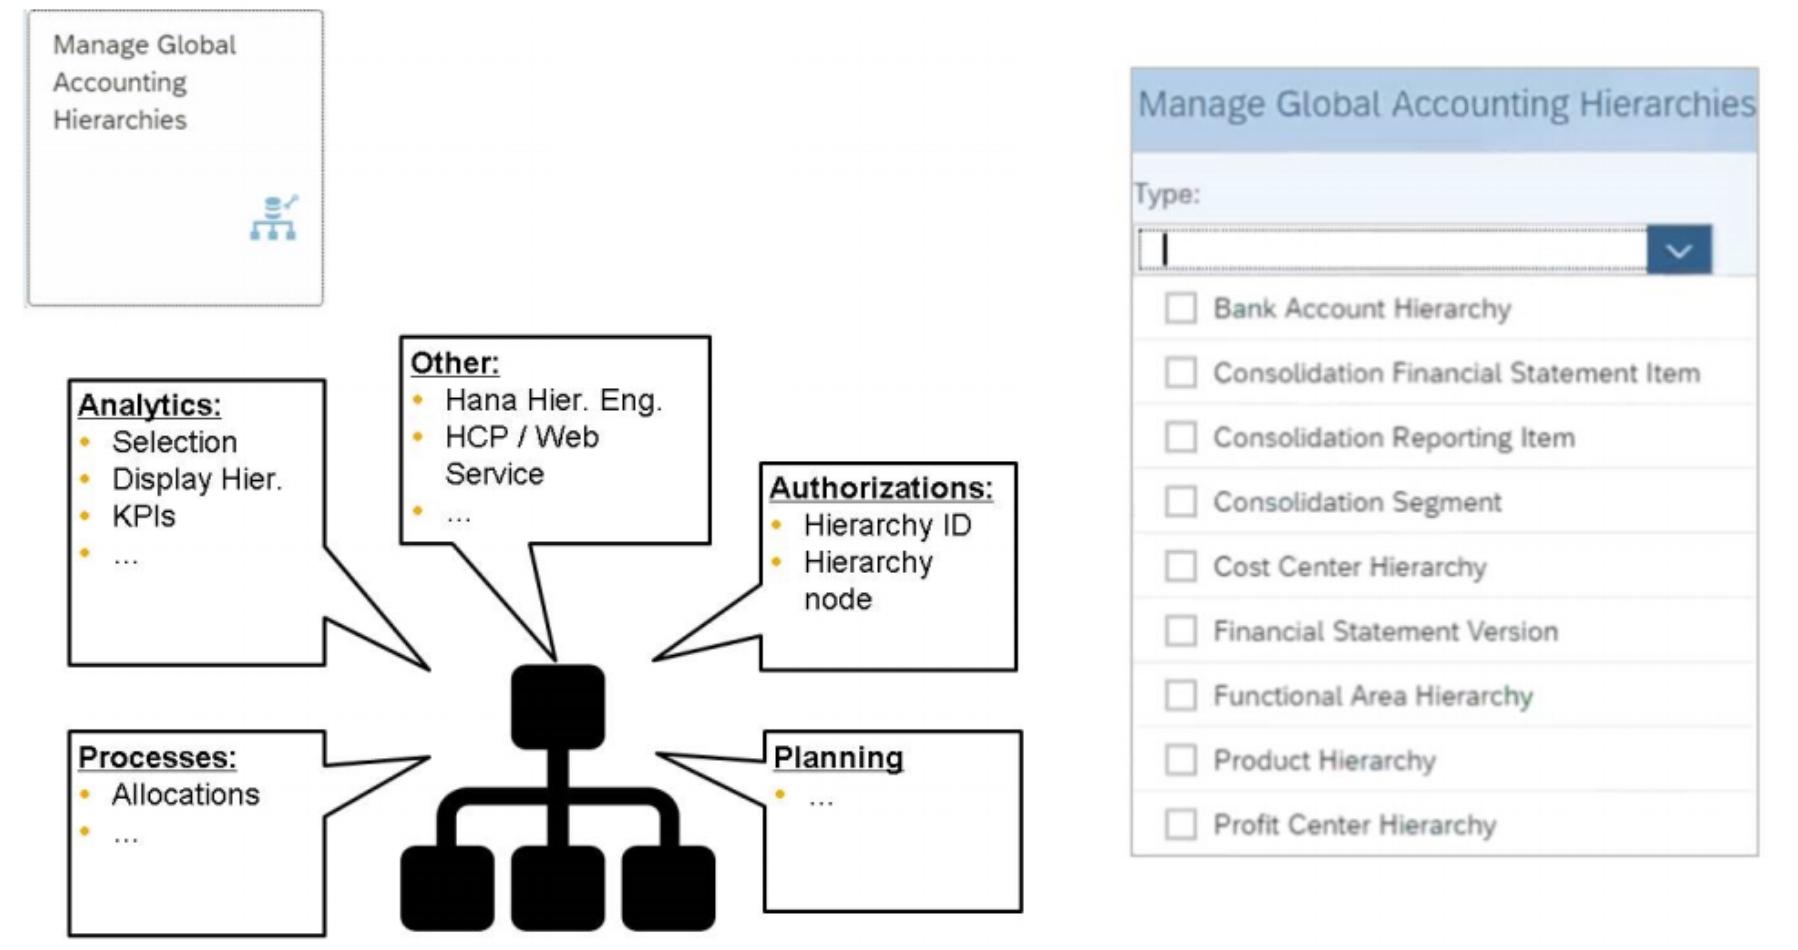 Global Accounting Hierarchies